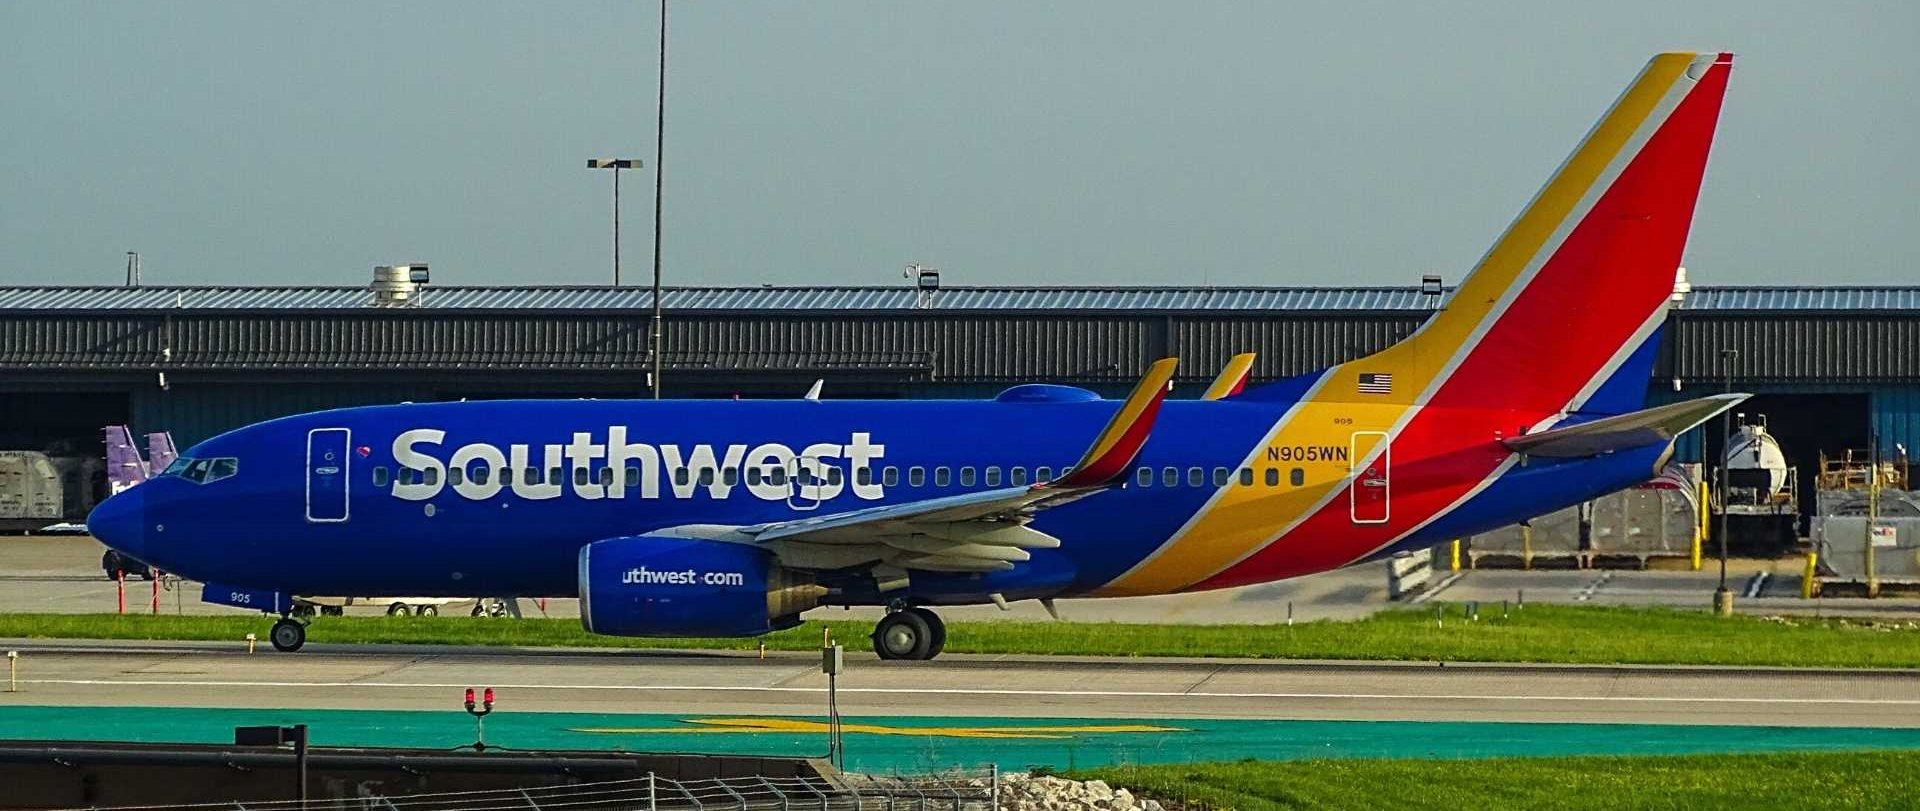 Southwest Airlines bans alcohol from flights after more incidents